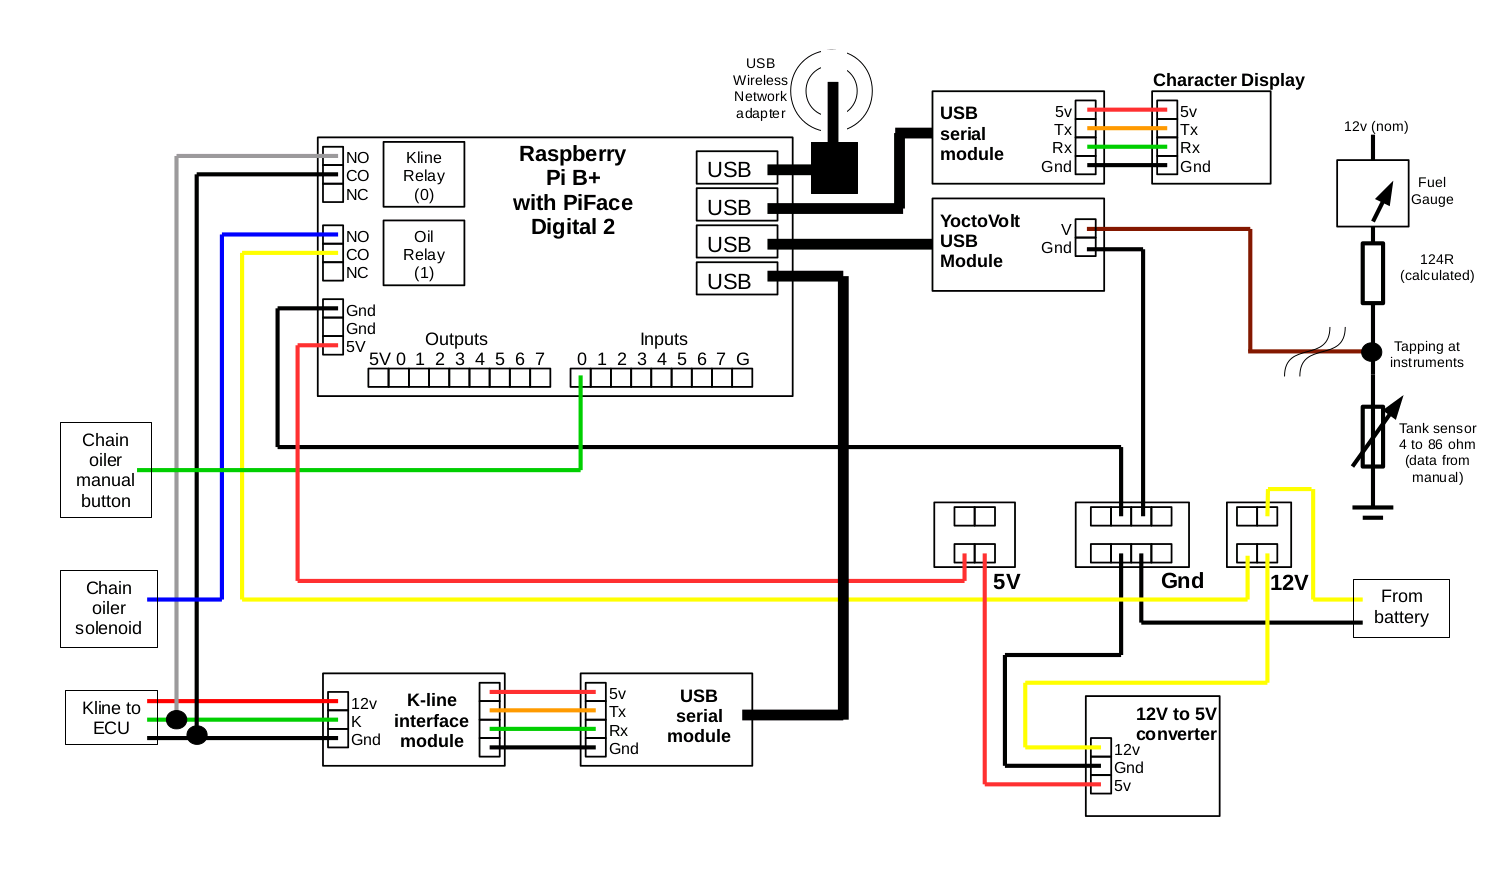 fuse box diagram on harley road king  fuse  free engine